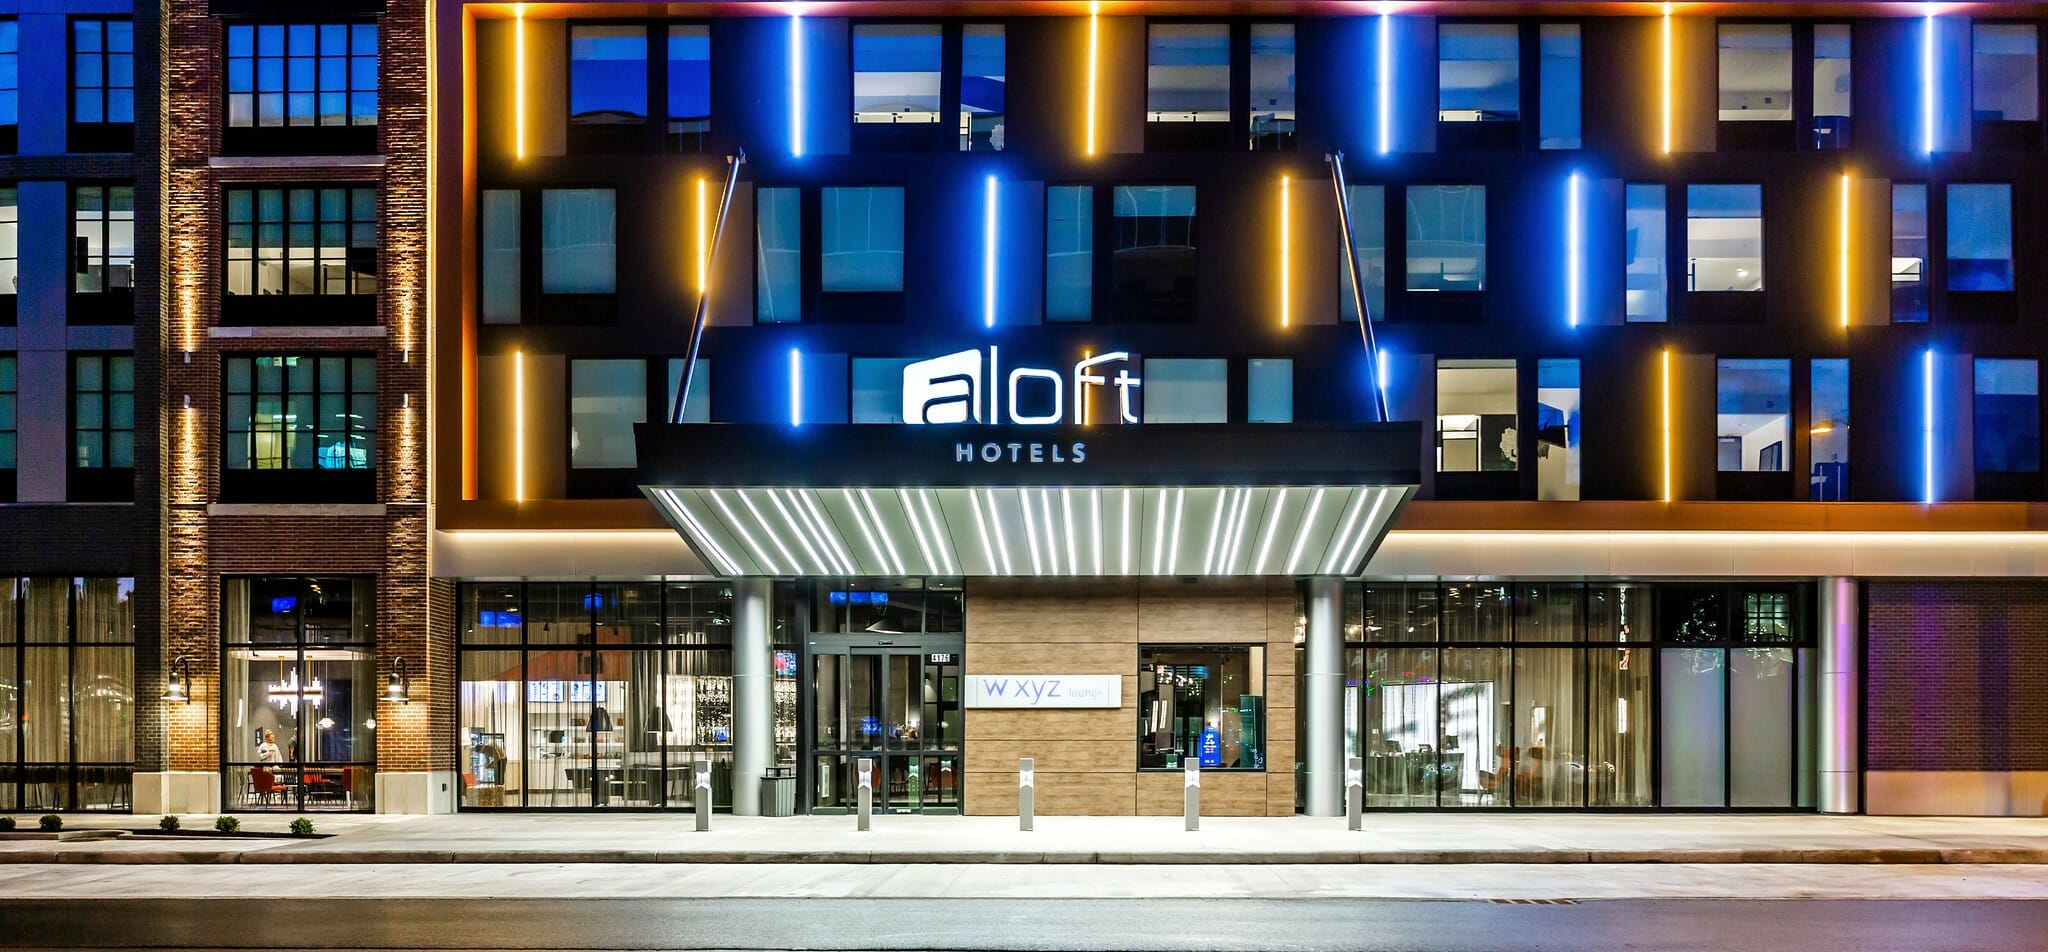 Exterior of the Aloft Hotel at Easton.